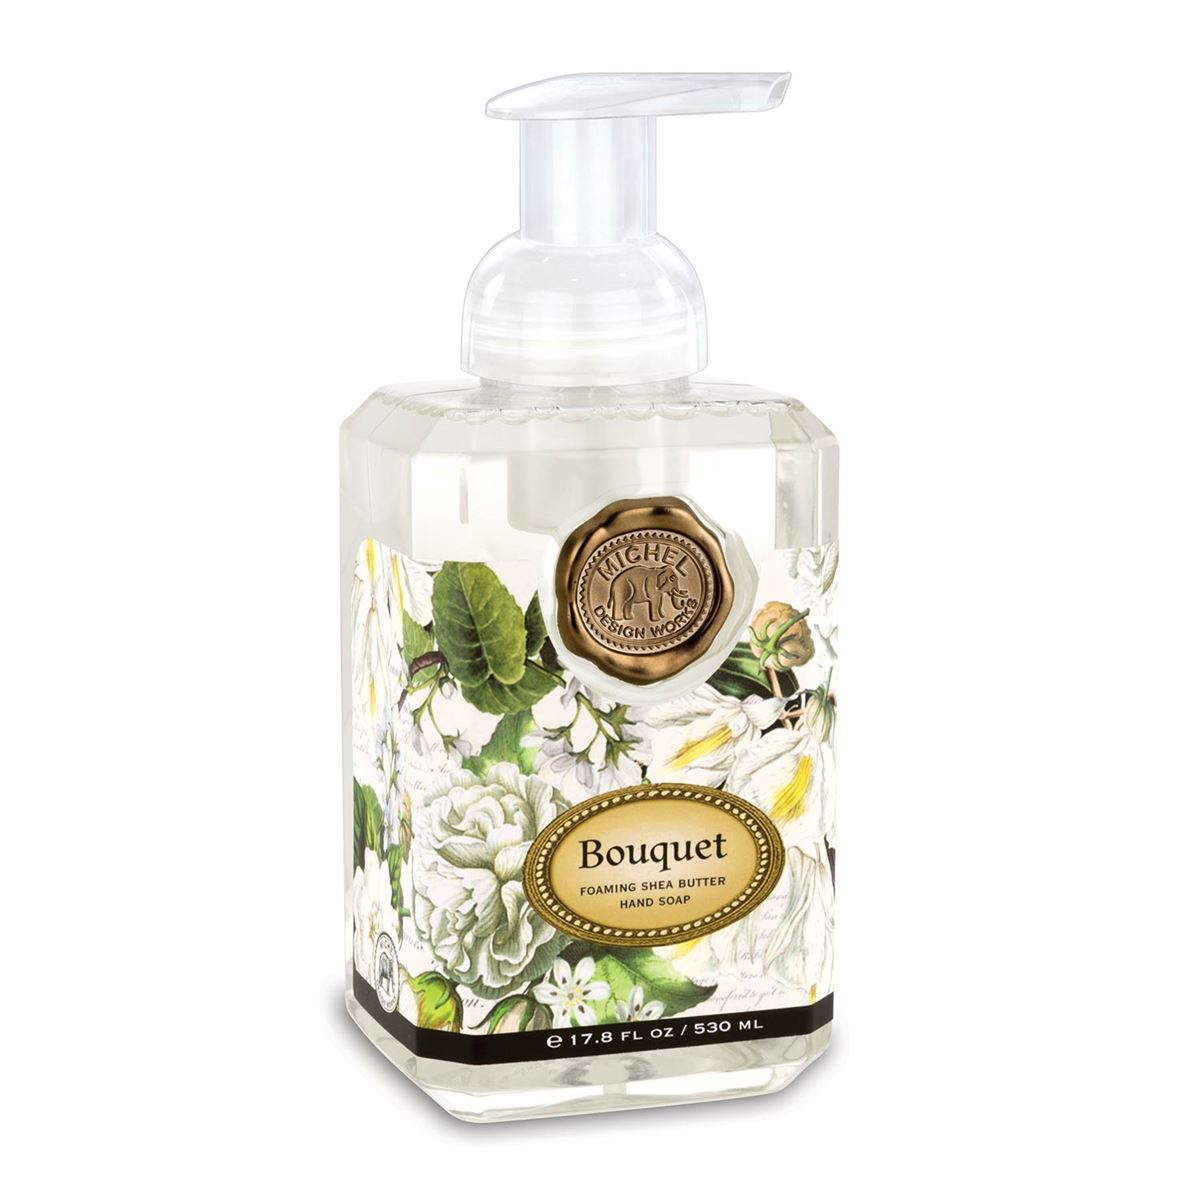 Foaming Hand Soap By Michel Design Works Bouquet